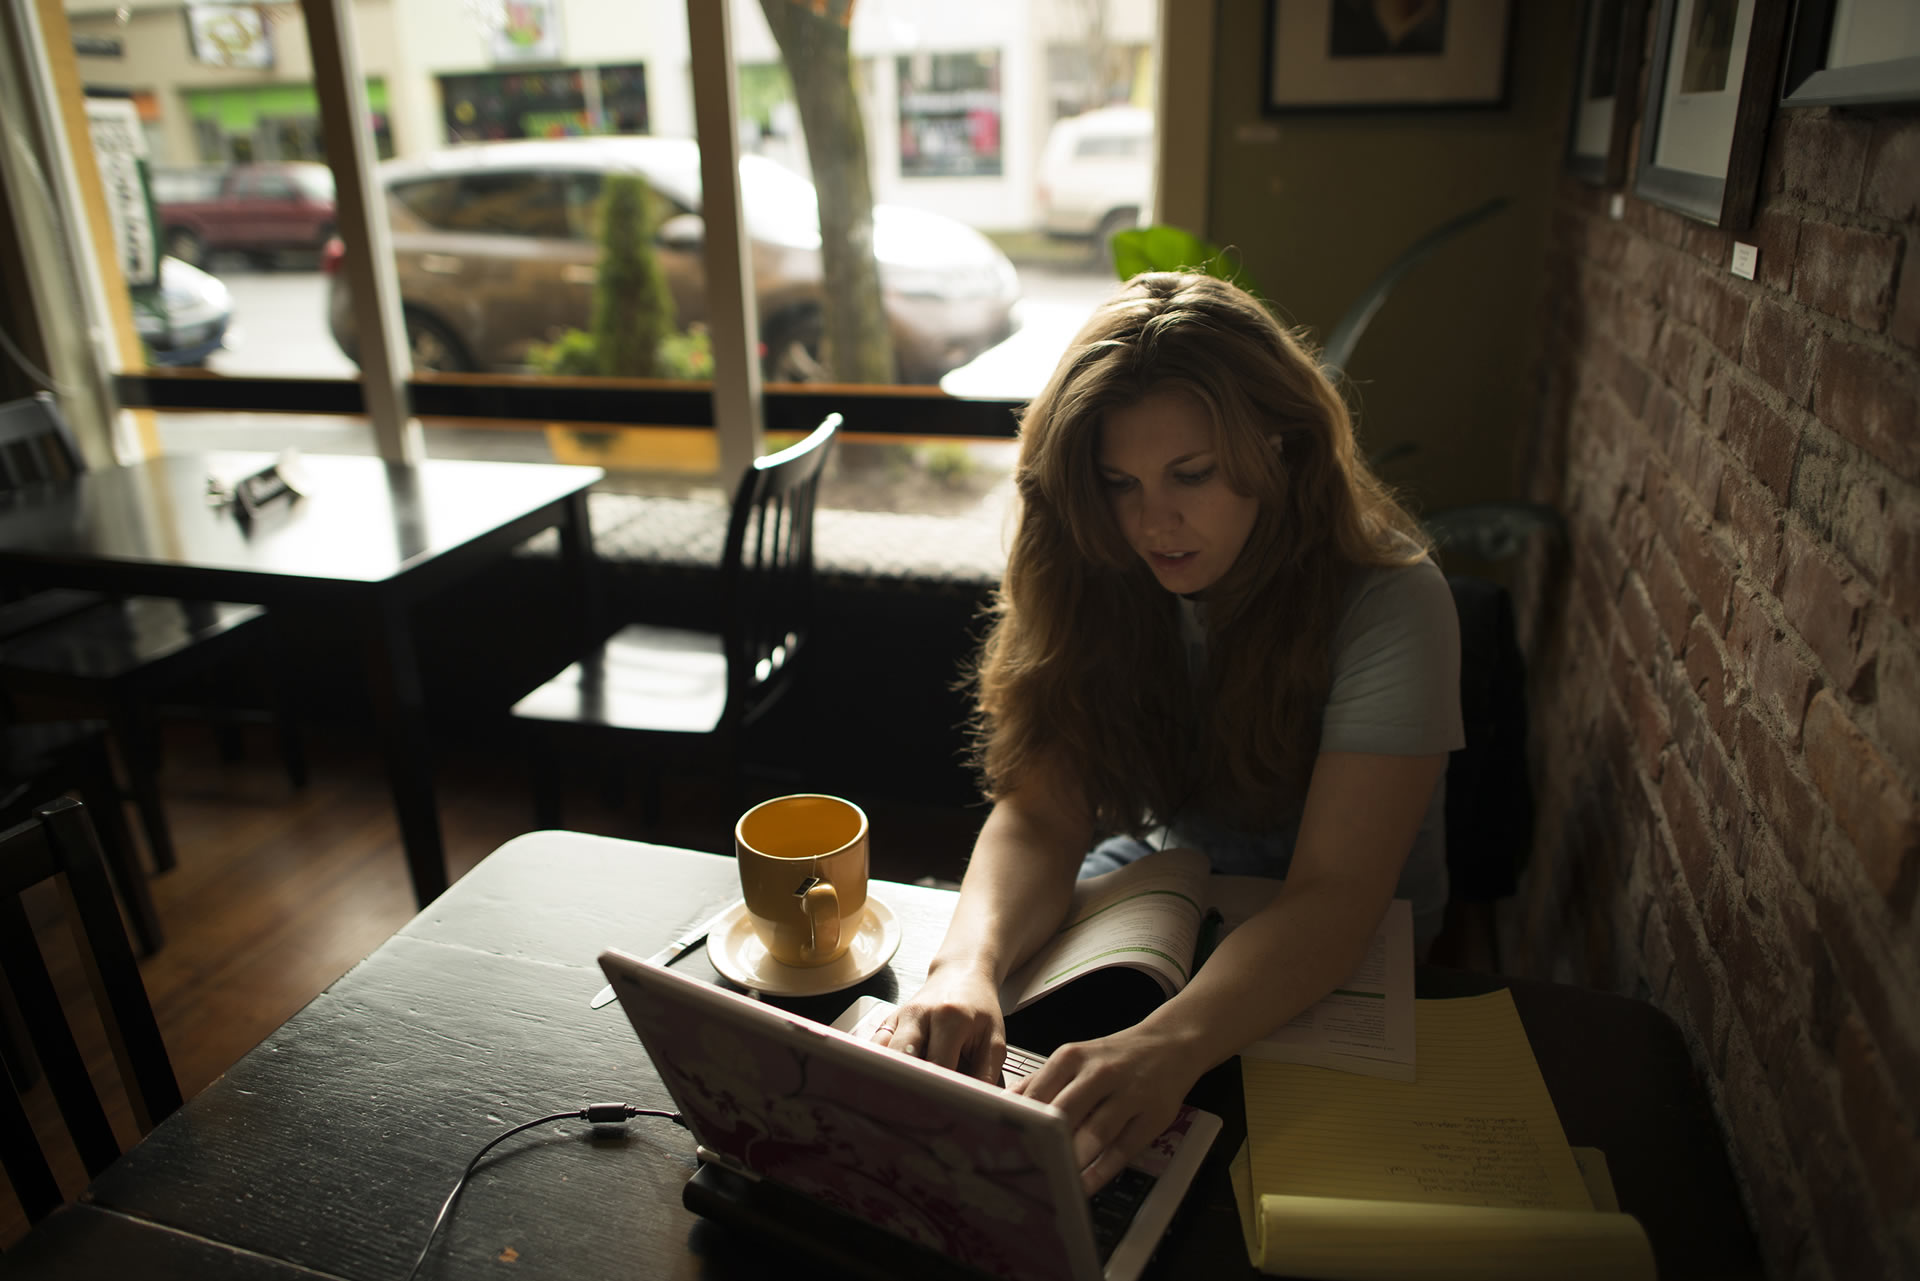 A young woman working on her laptop in a coffee shop